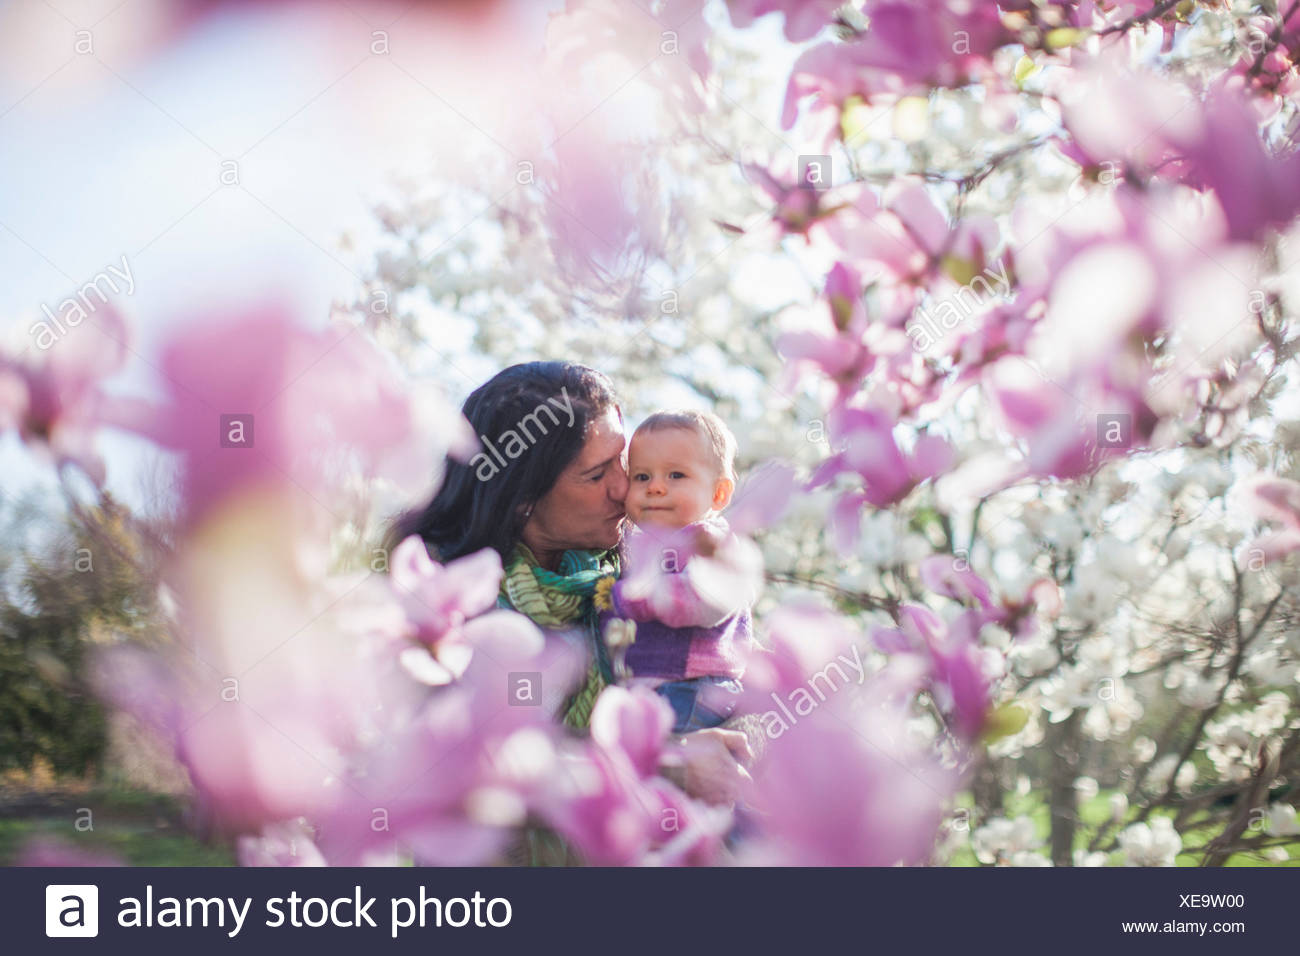 Granddaughter and grandmother amongst magnolia blossom - Stock Image